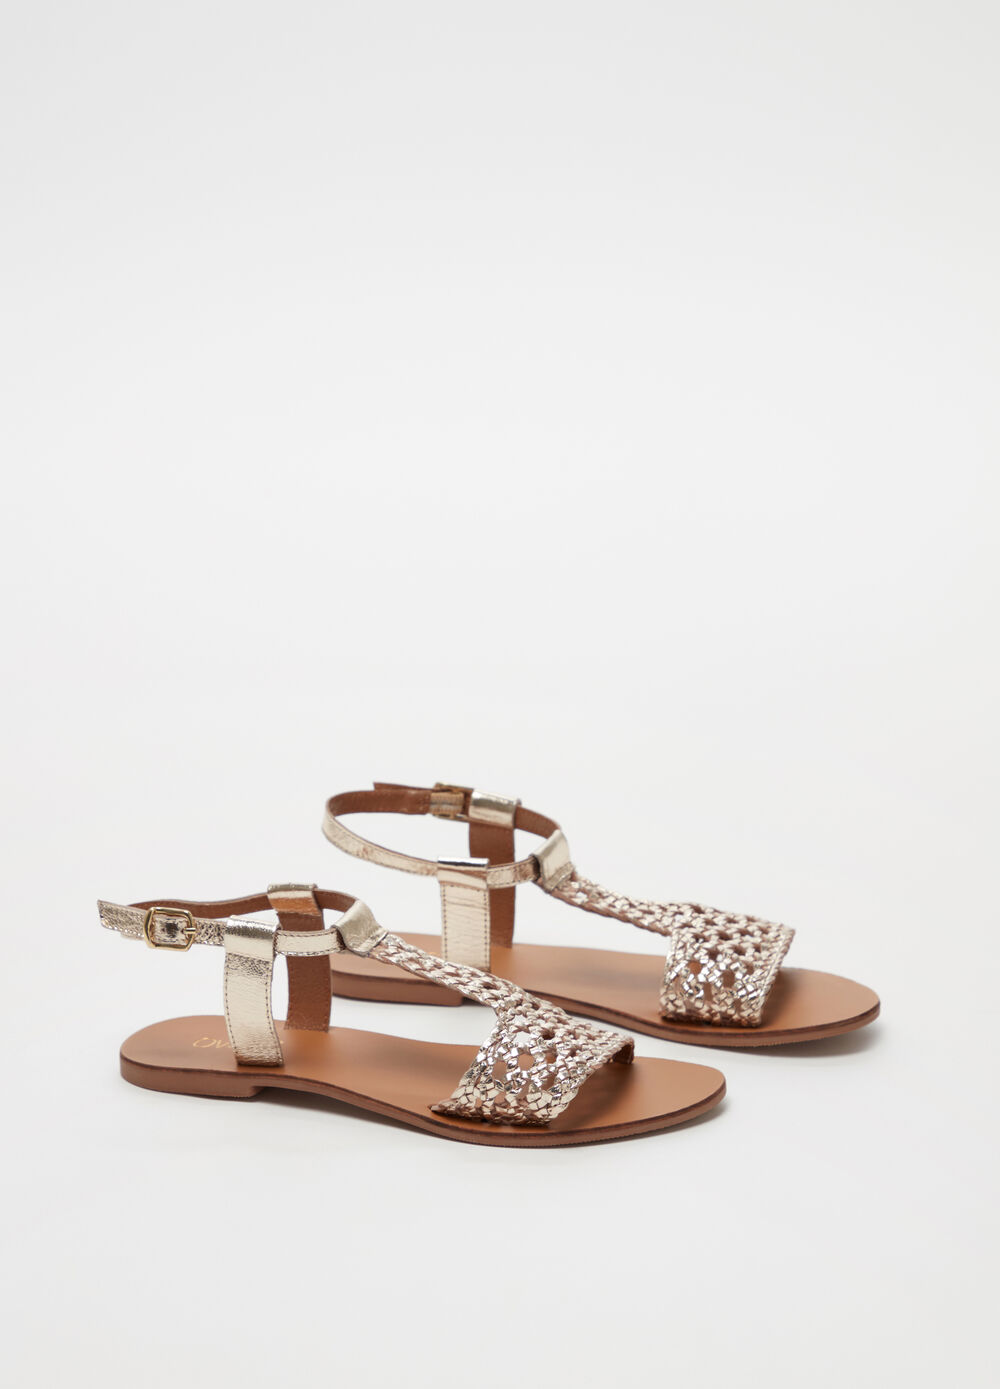 Sandals with polished-effect openwork strap